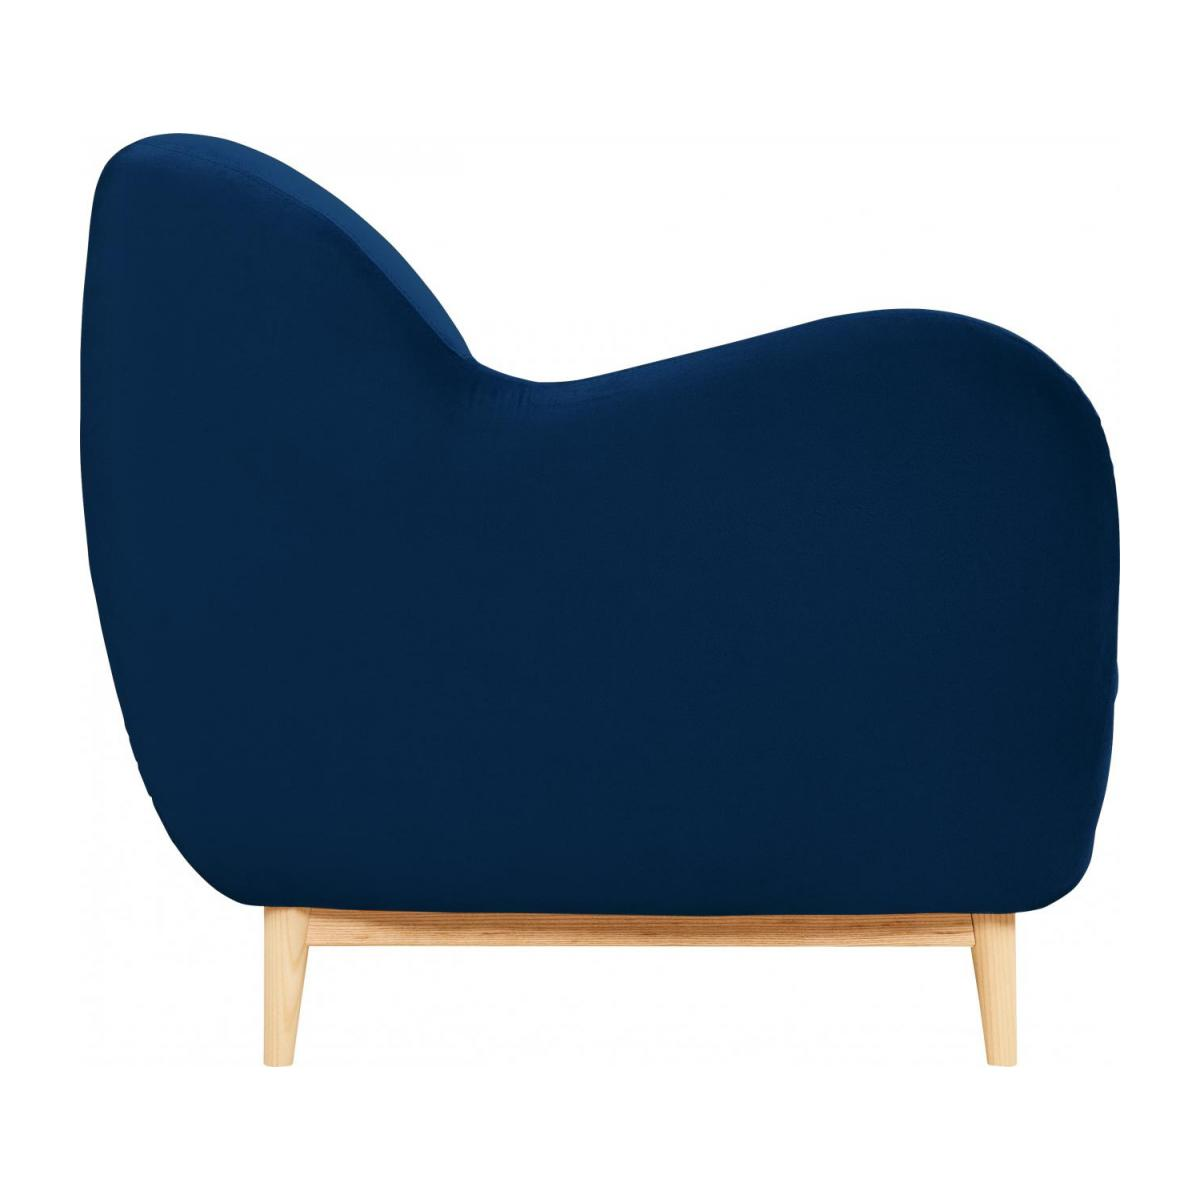 2-seat sofa made of velvet, blue n°4